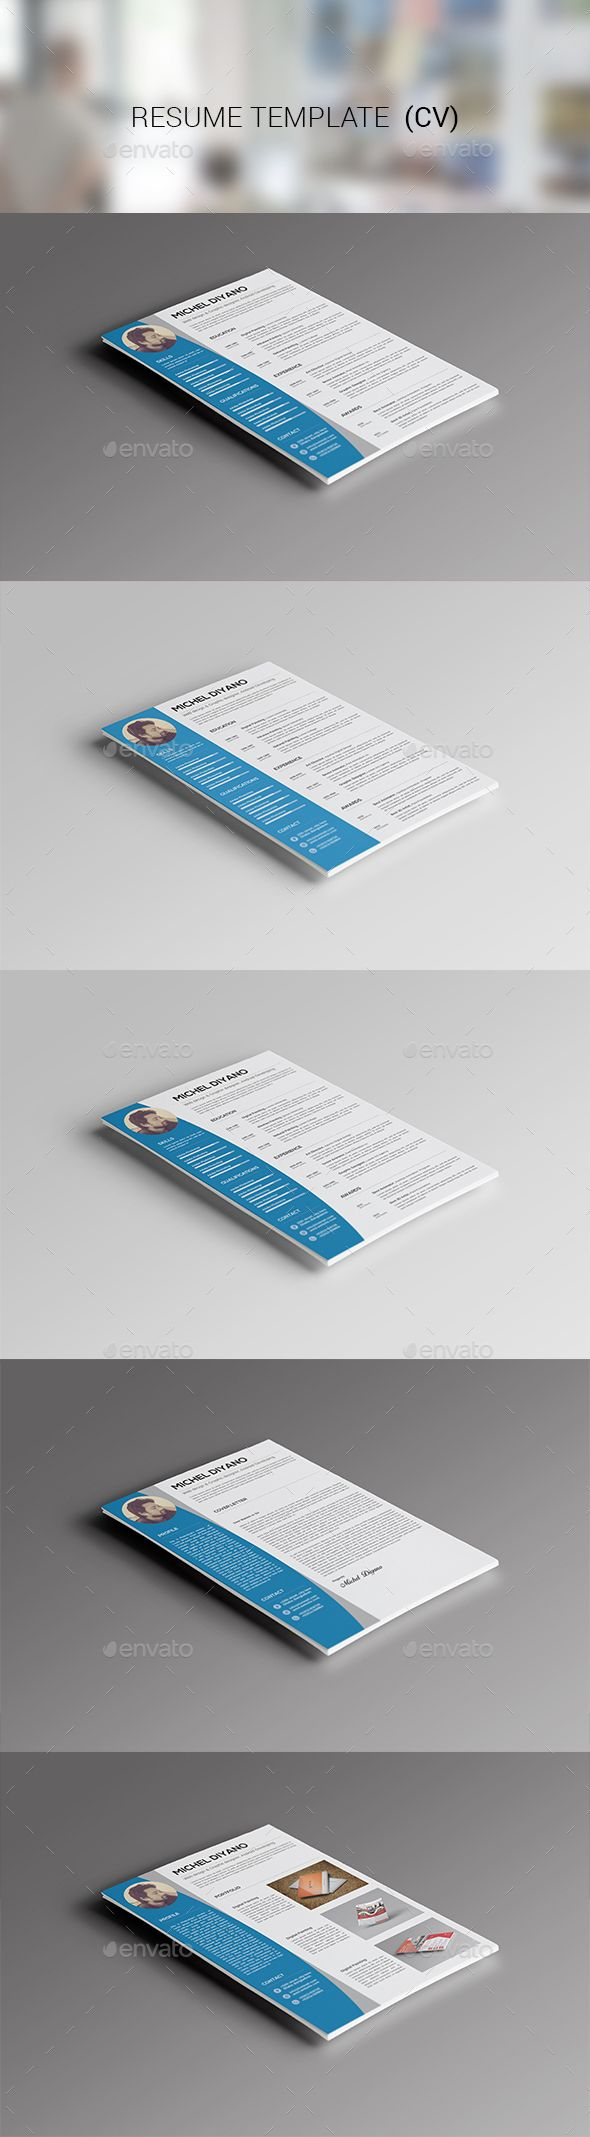 379 best Resume, Cover Latter images on Pinterest | Cover letters ...